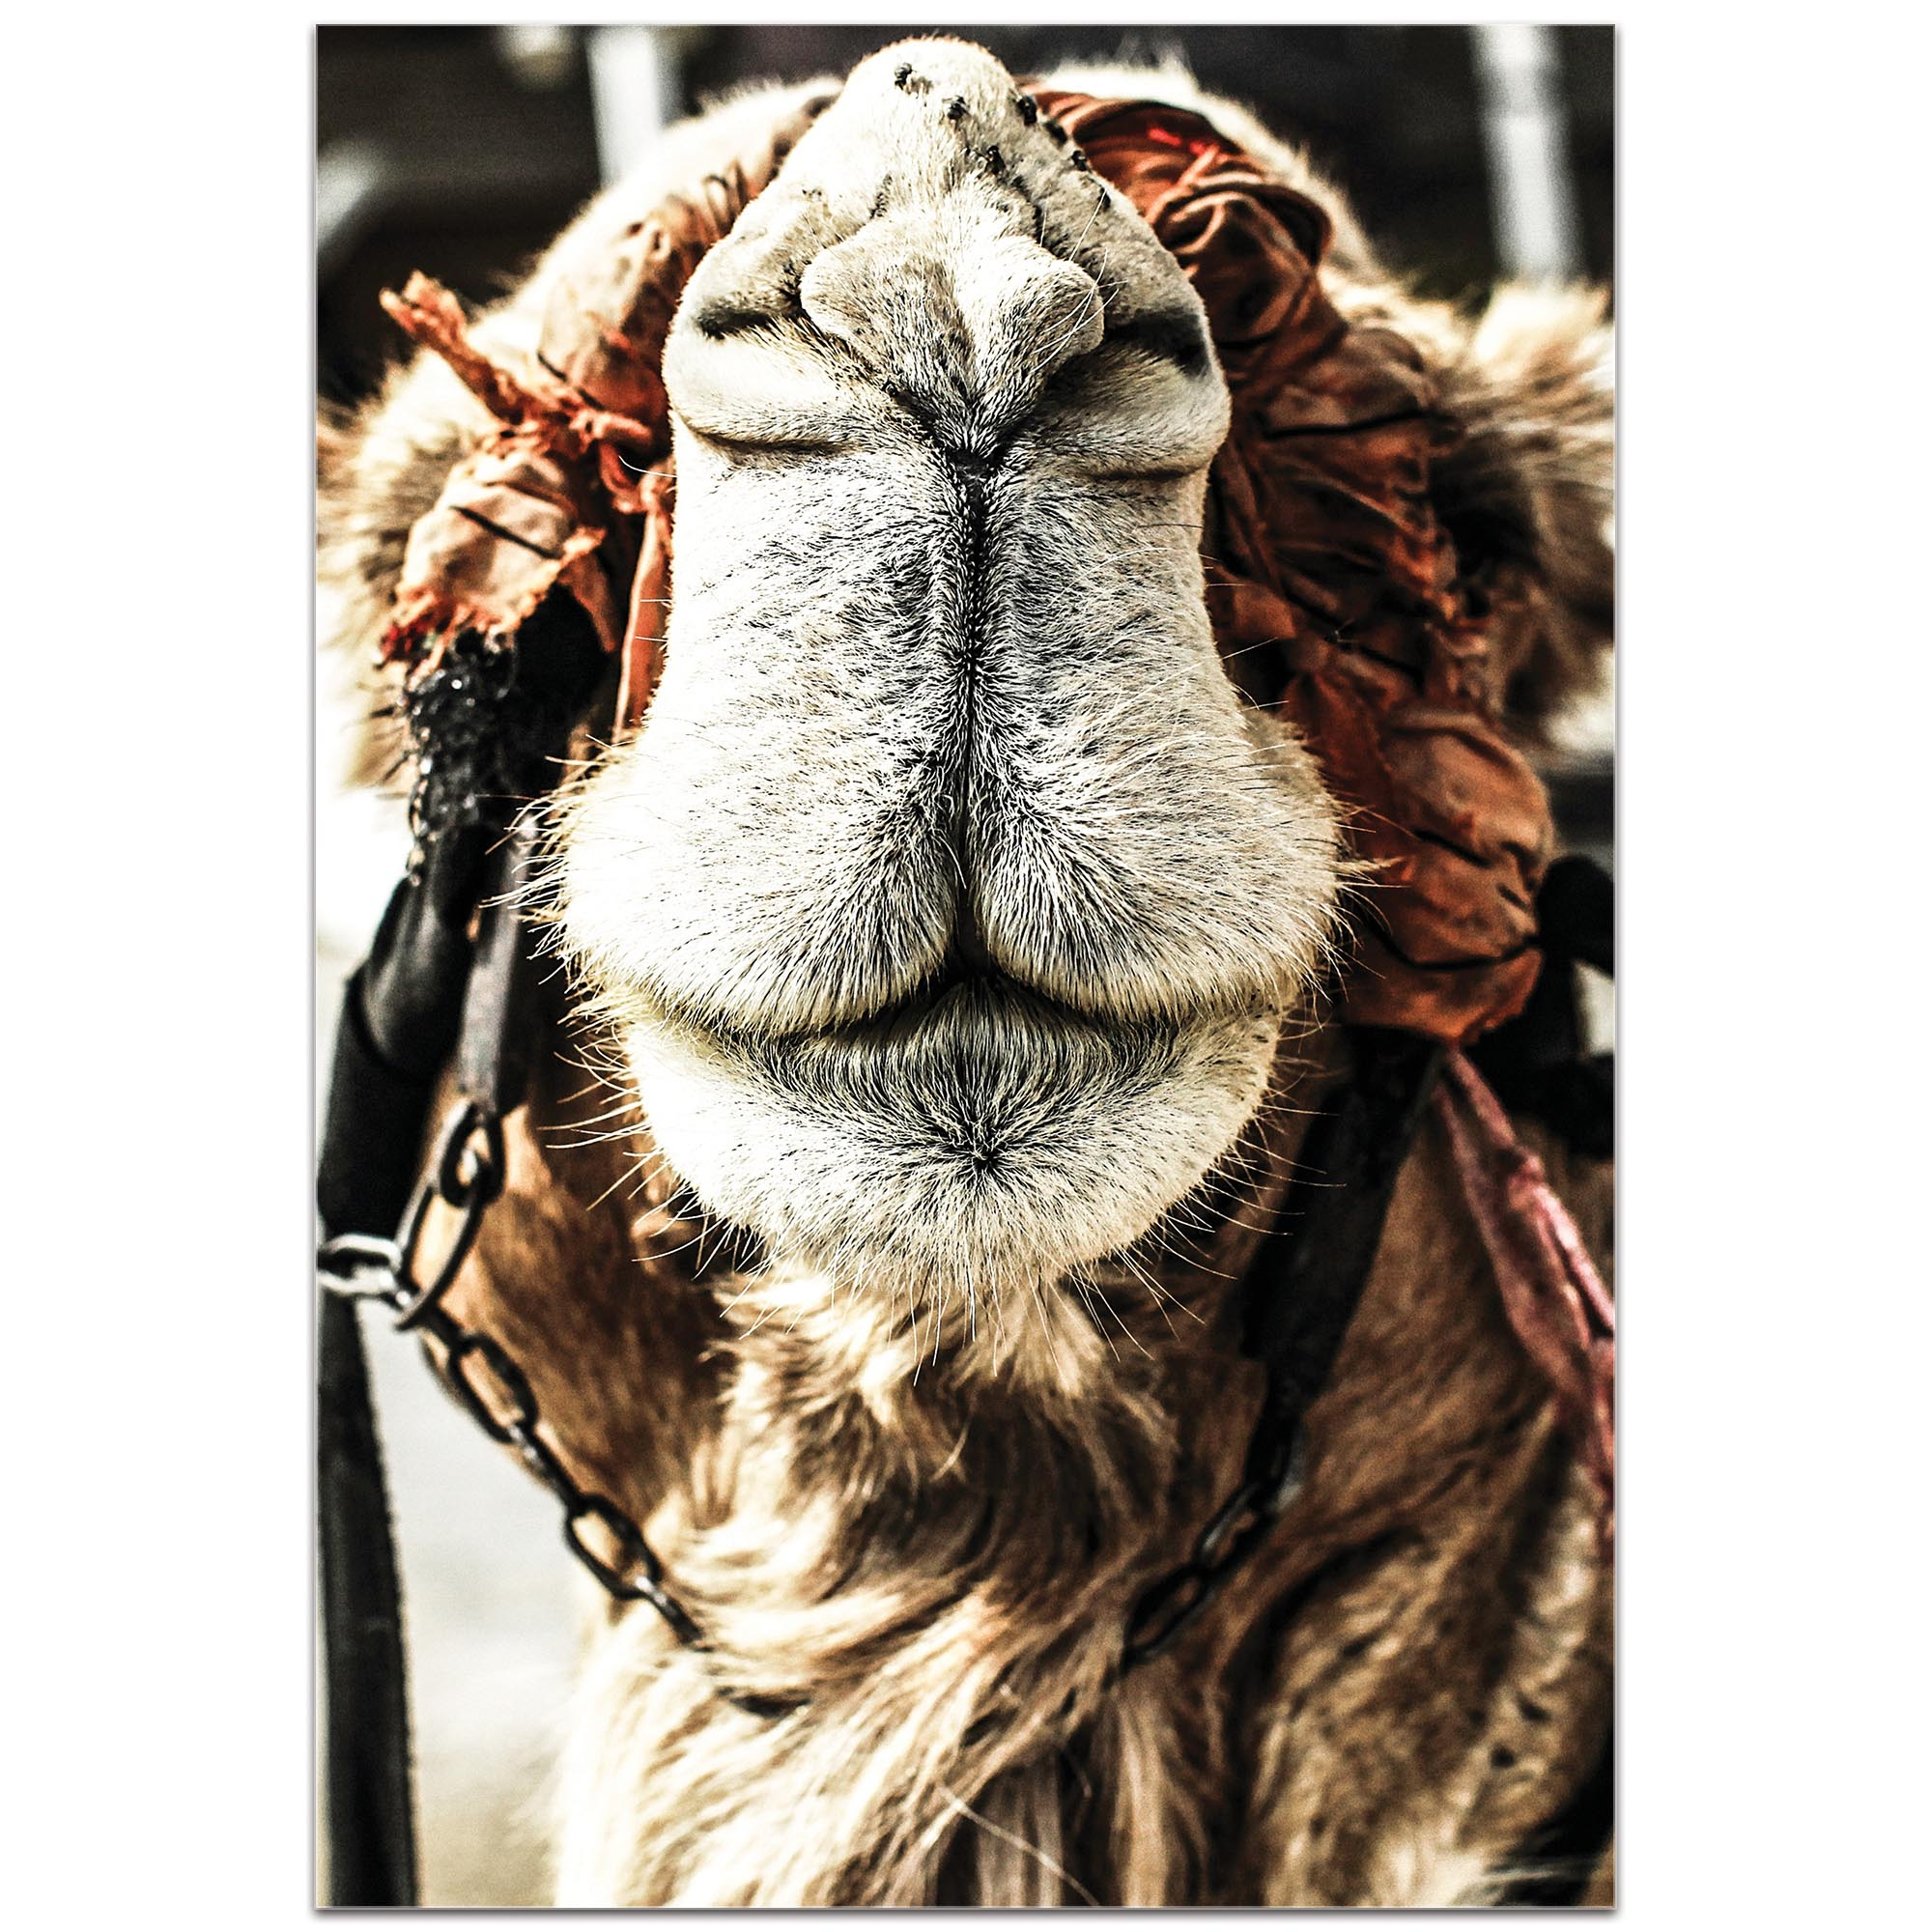 Casual Wall Art 'Camel Grin' - Wildlife Decor on Metal or Plexiglass - Image 2